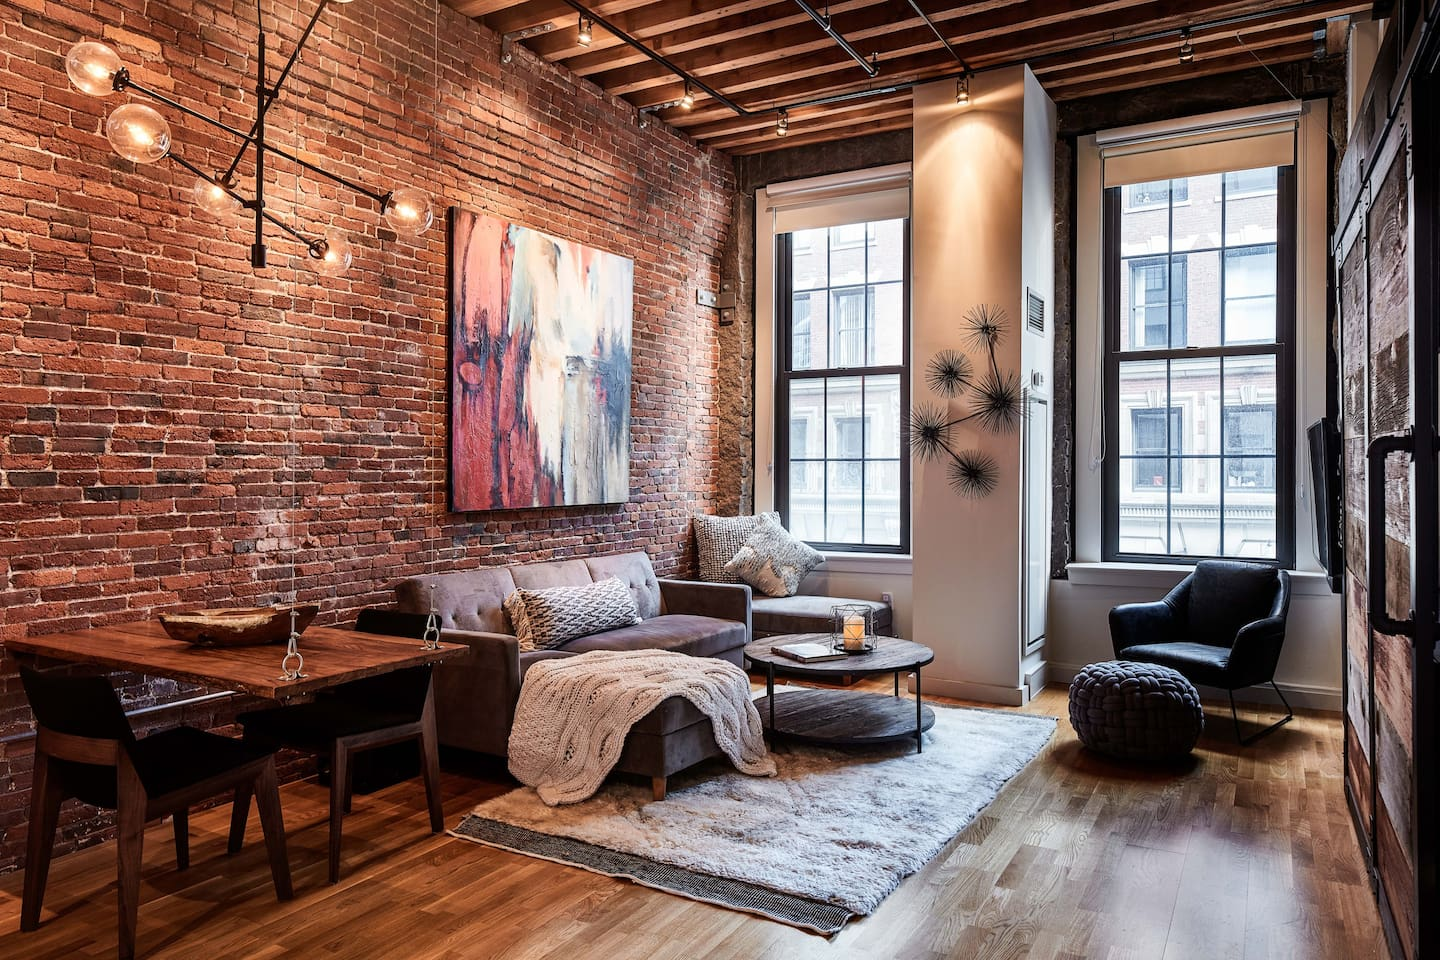 Lots of character in this loft space with soaring 12-foot ceilings